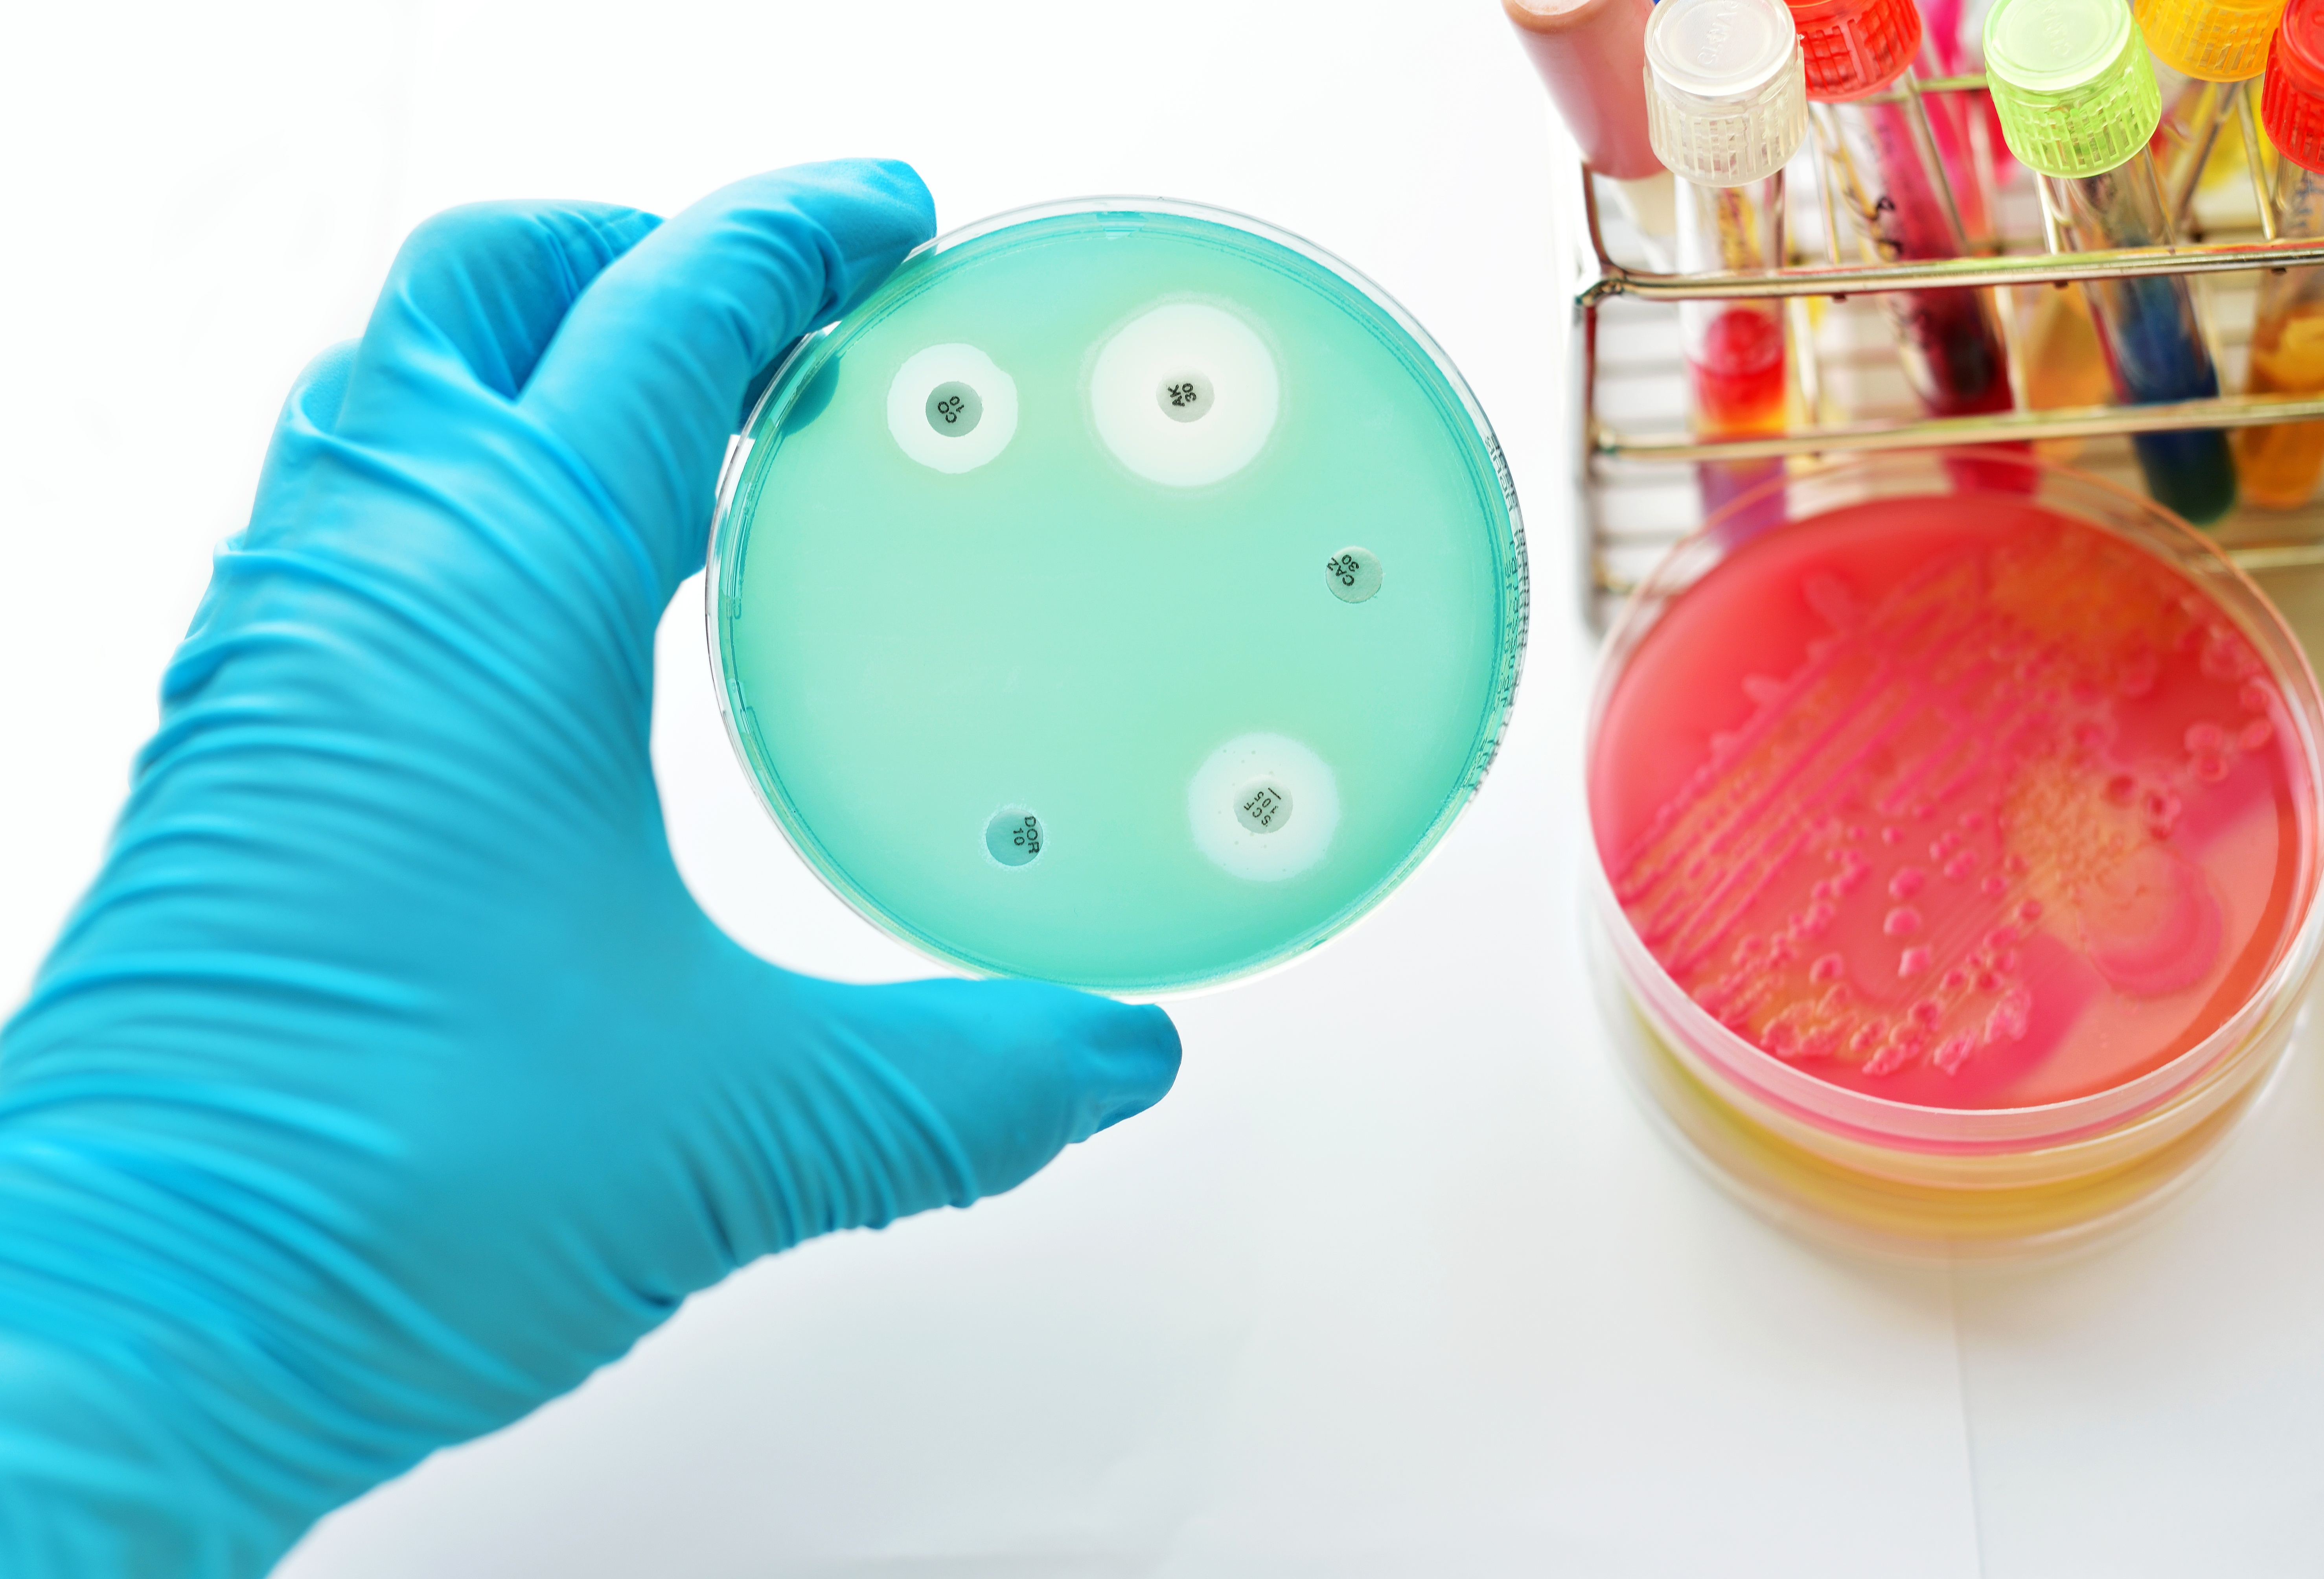 Antibiotic resistance in a global challenege that must be met with a global response